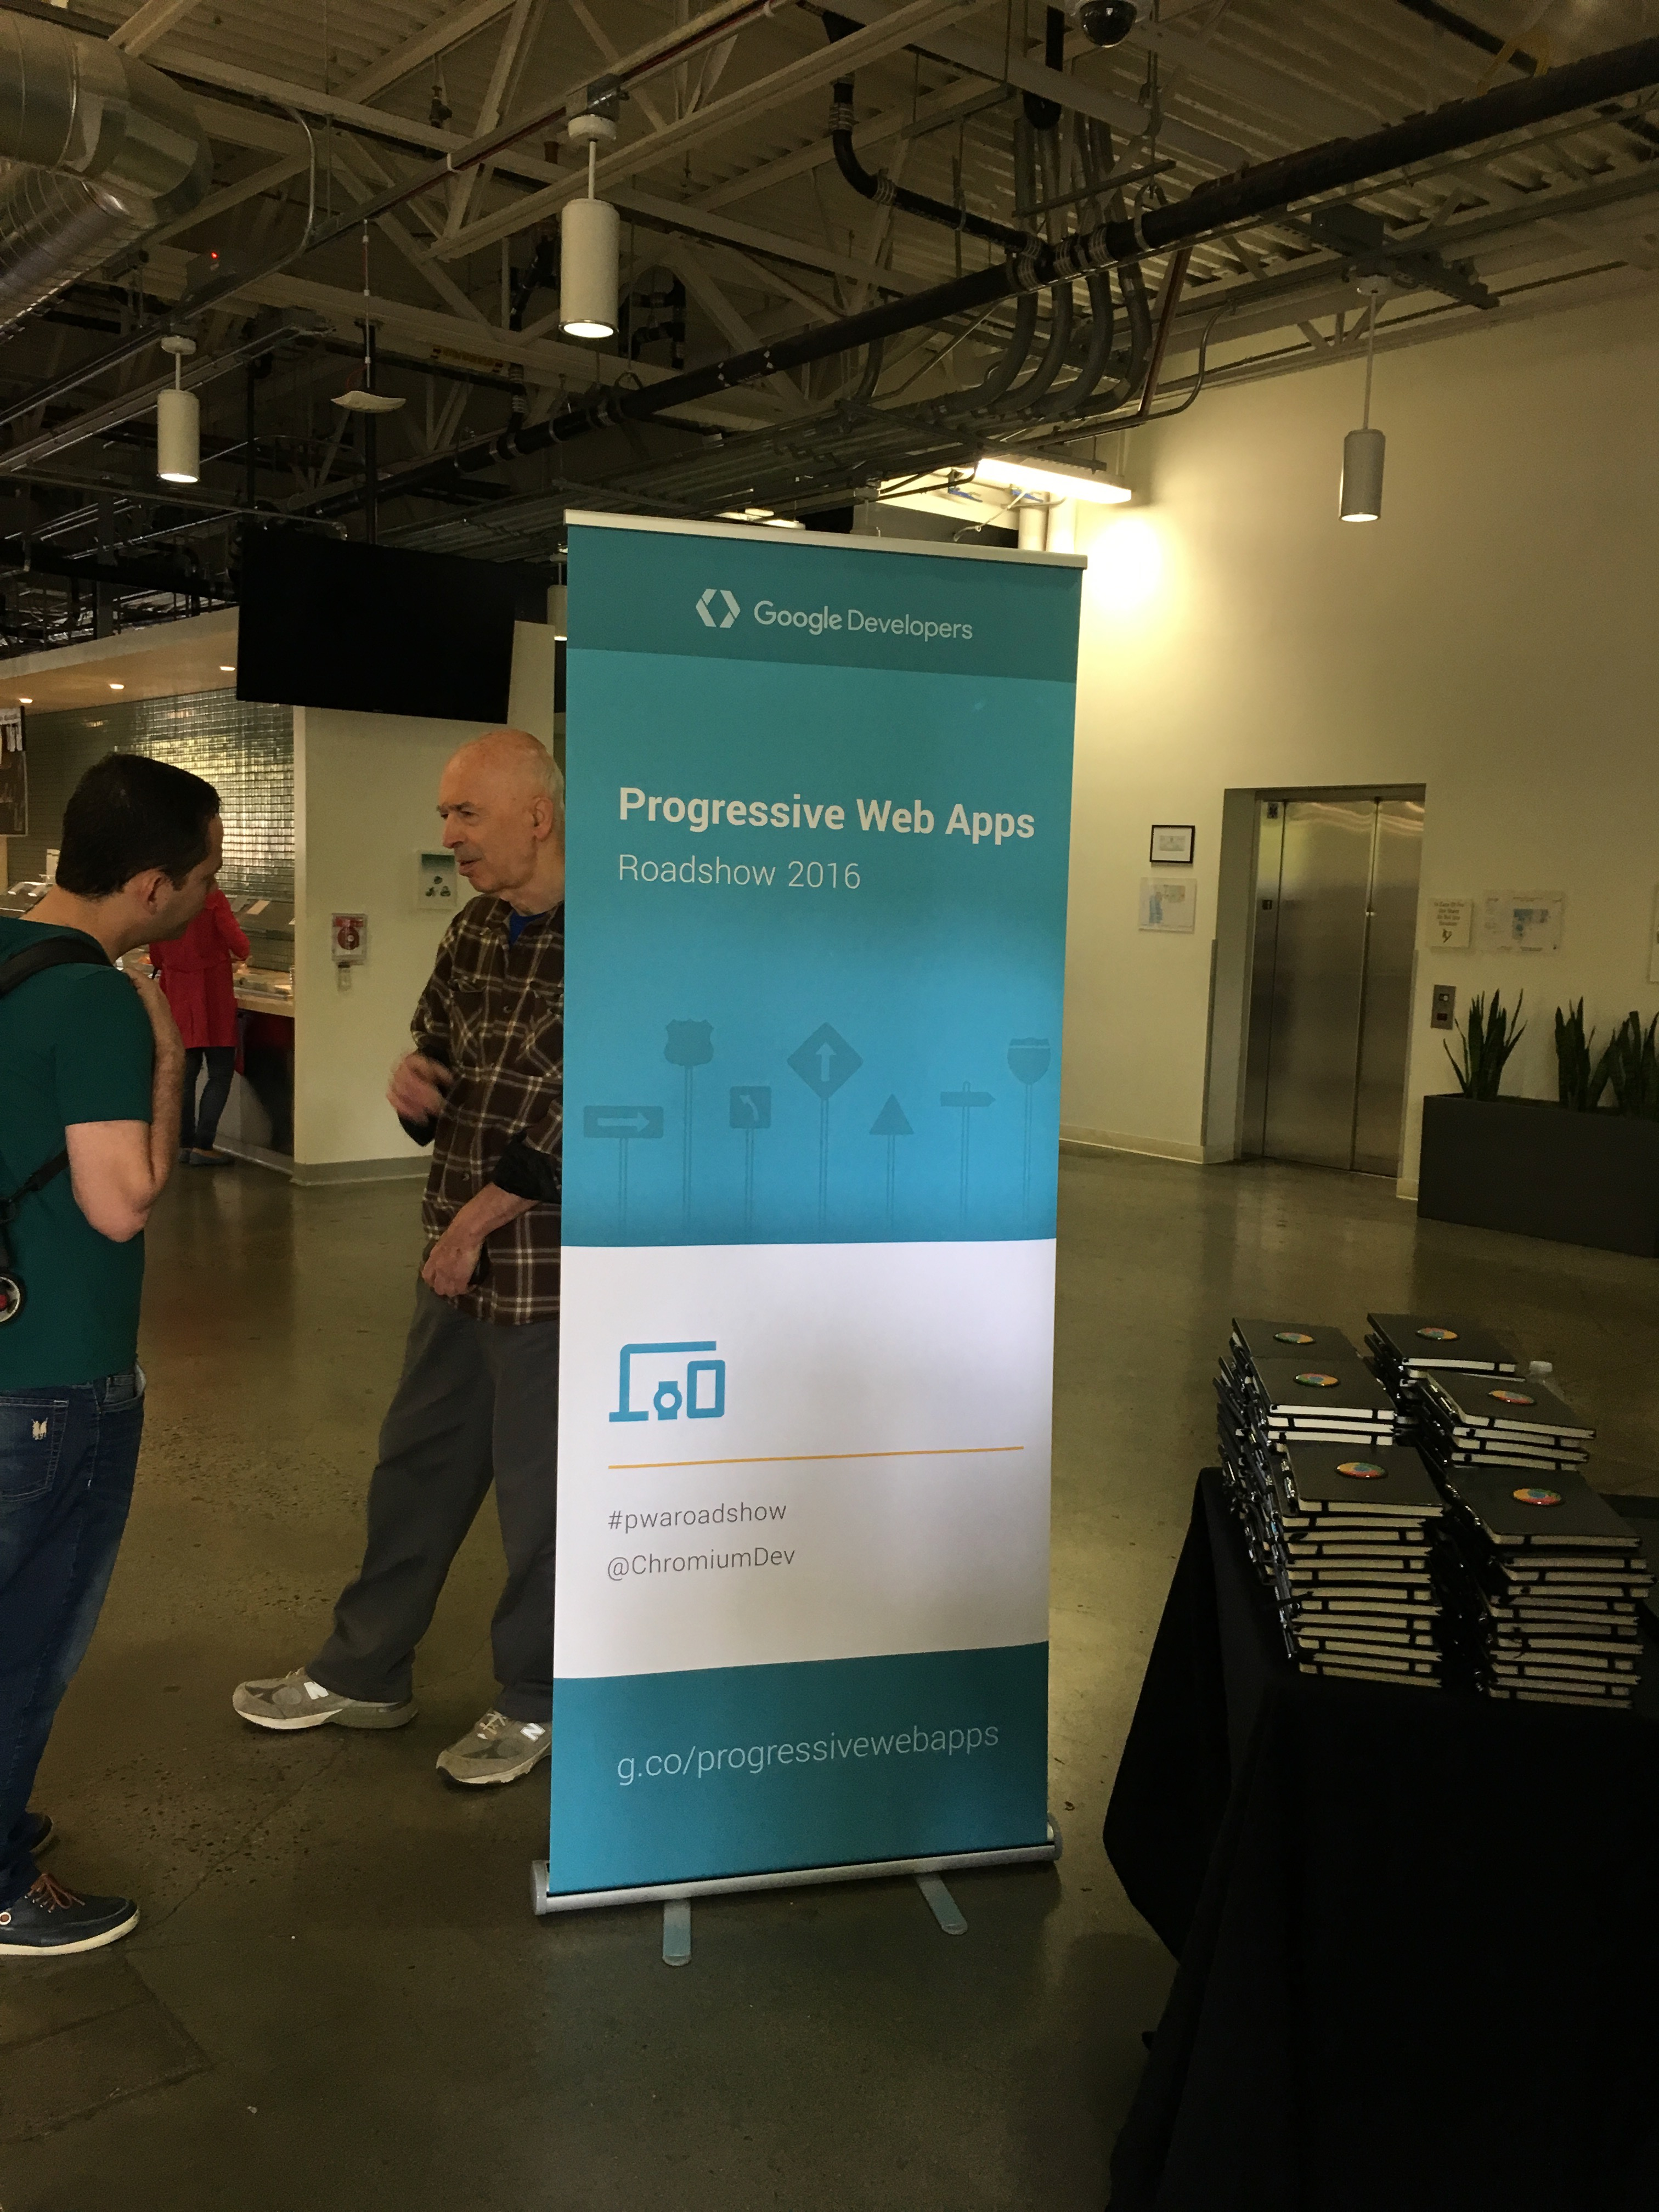 Progressive Web Apps Roadshow